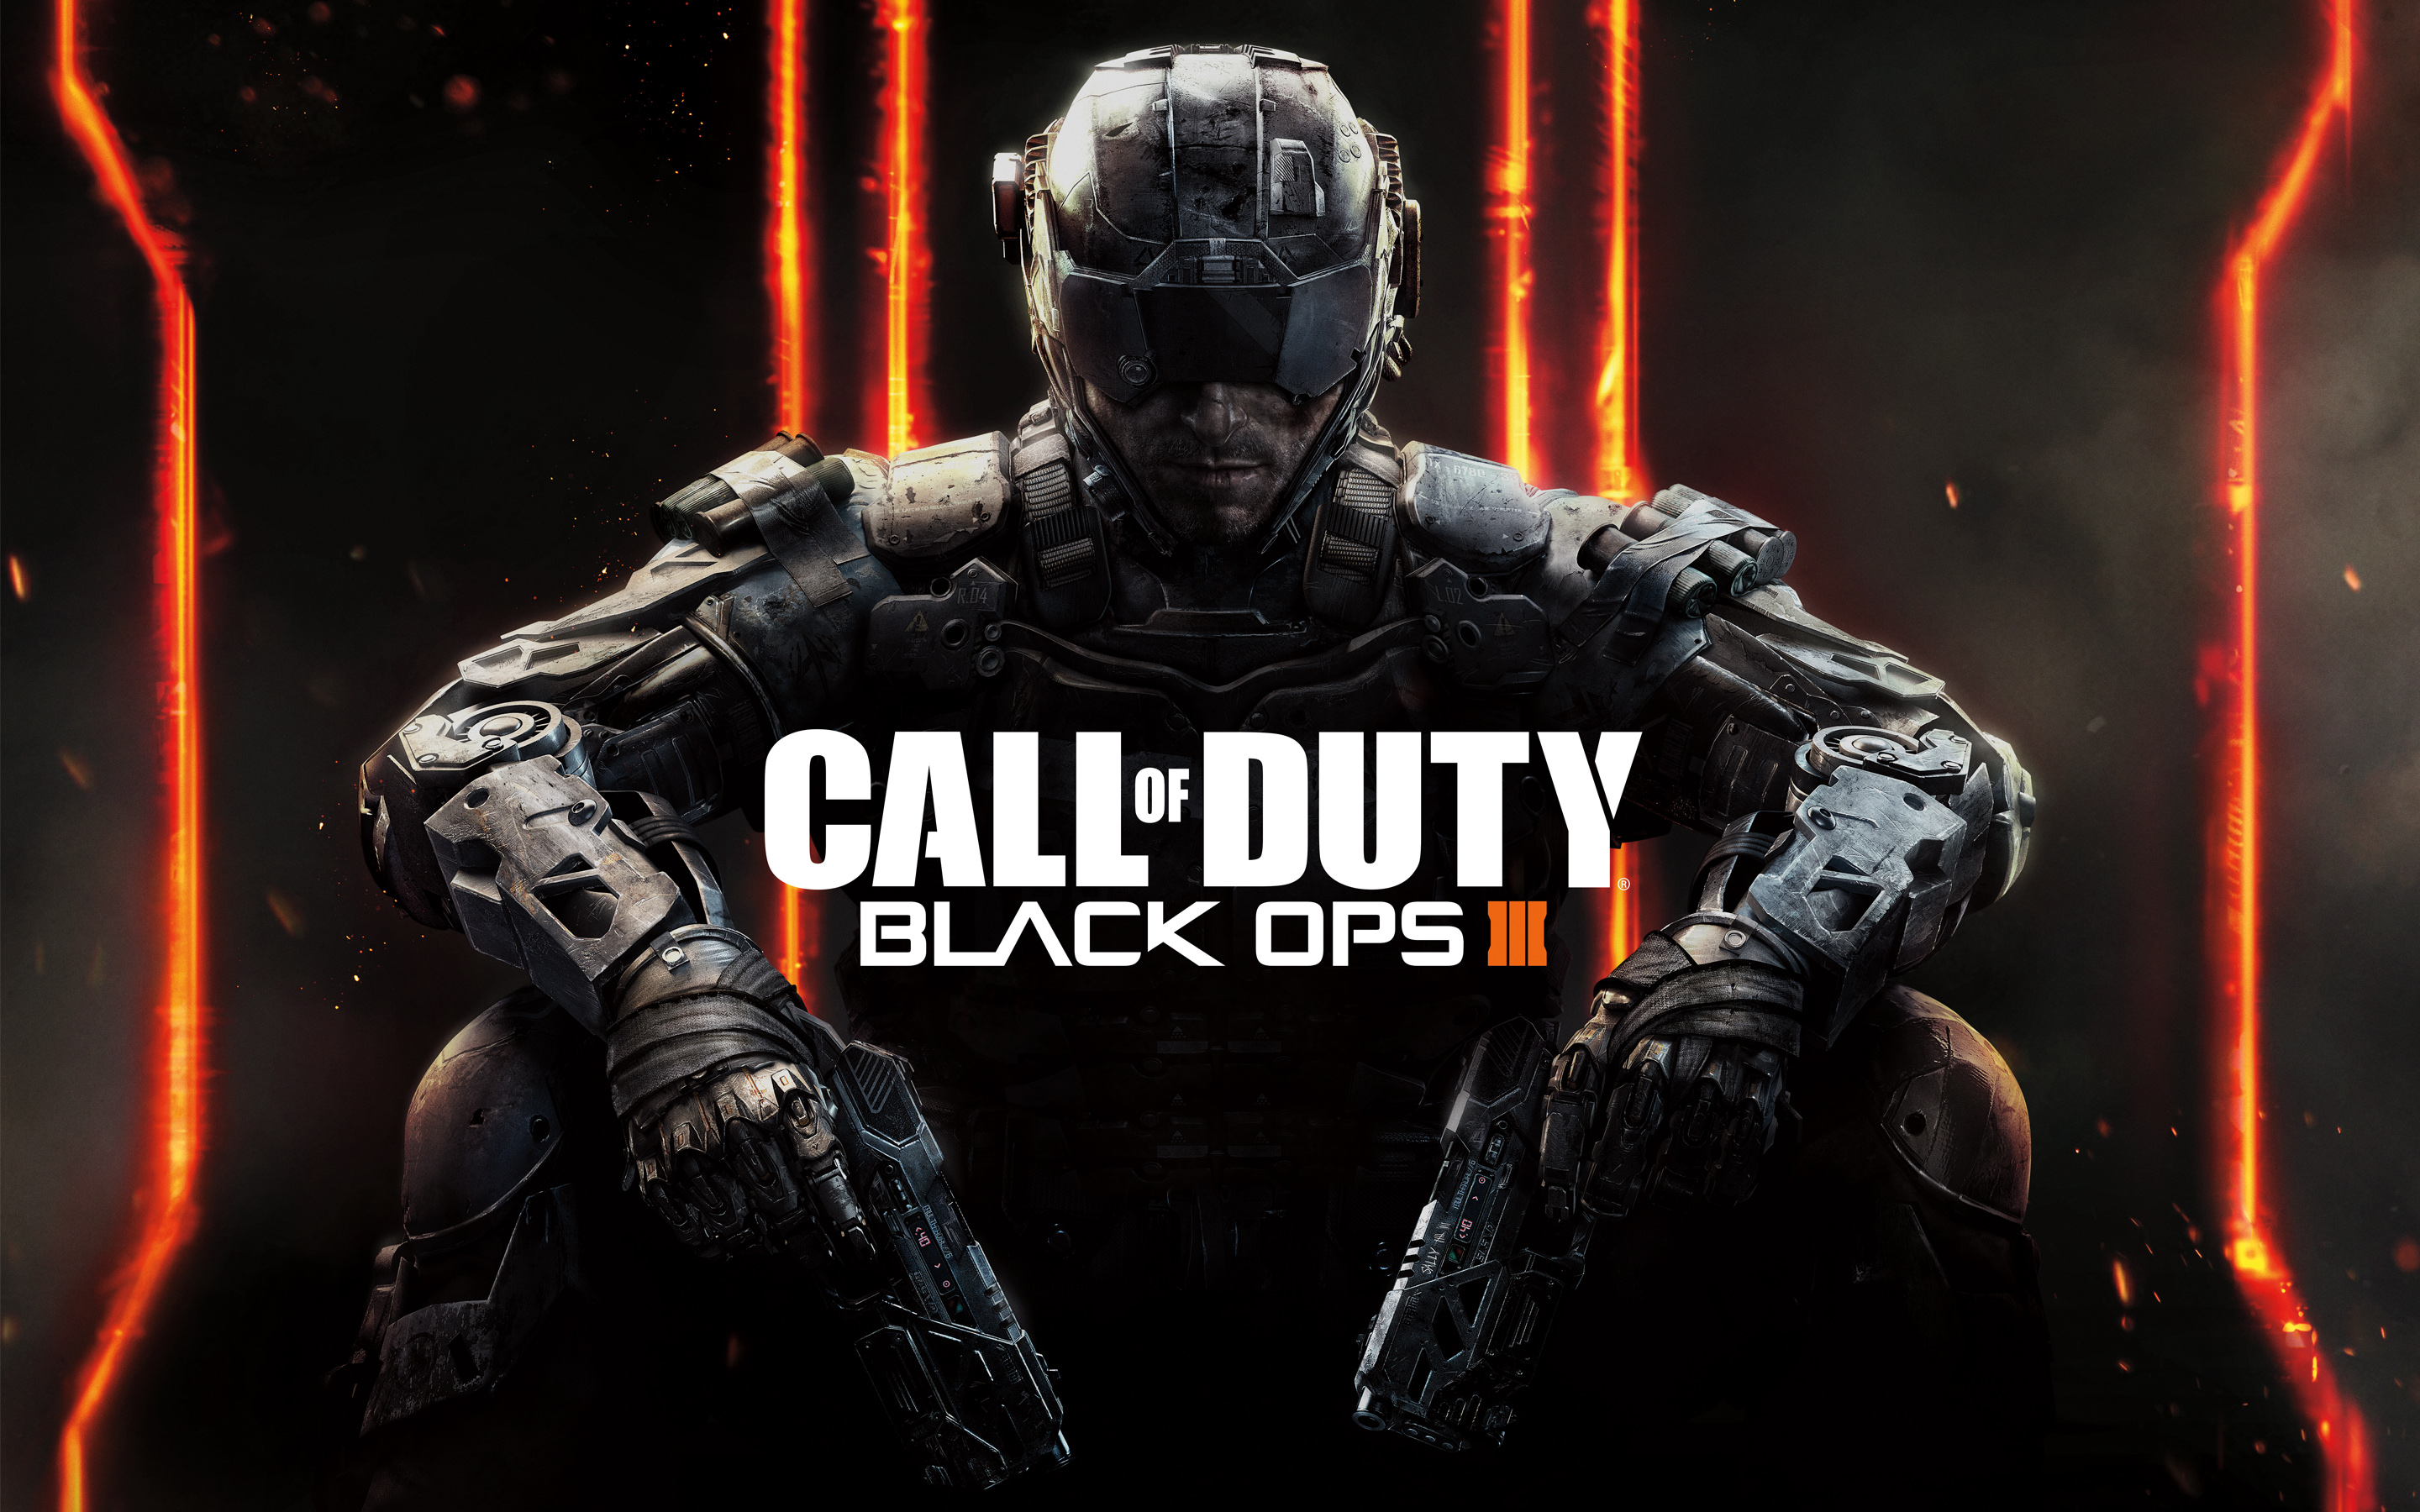 Call of Duty Black Ops III Wallpapers HD Wallpapers 2880x1800